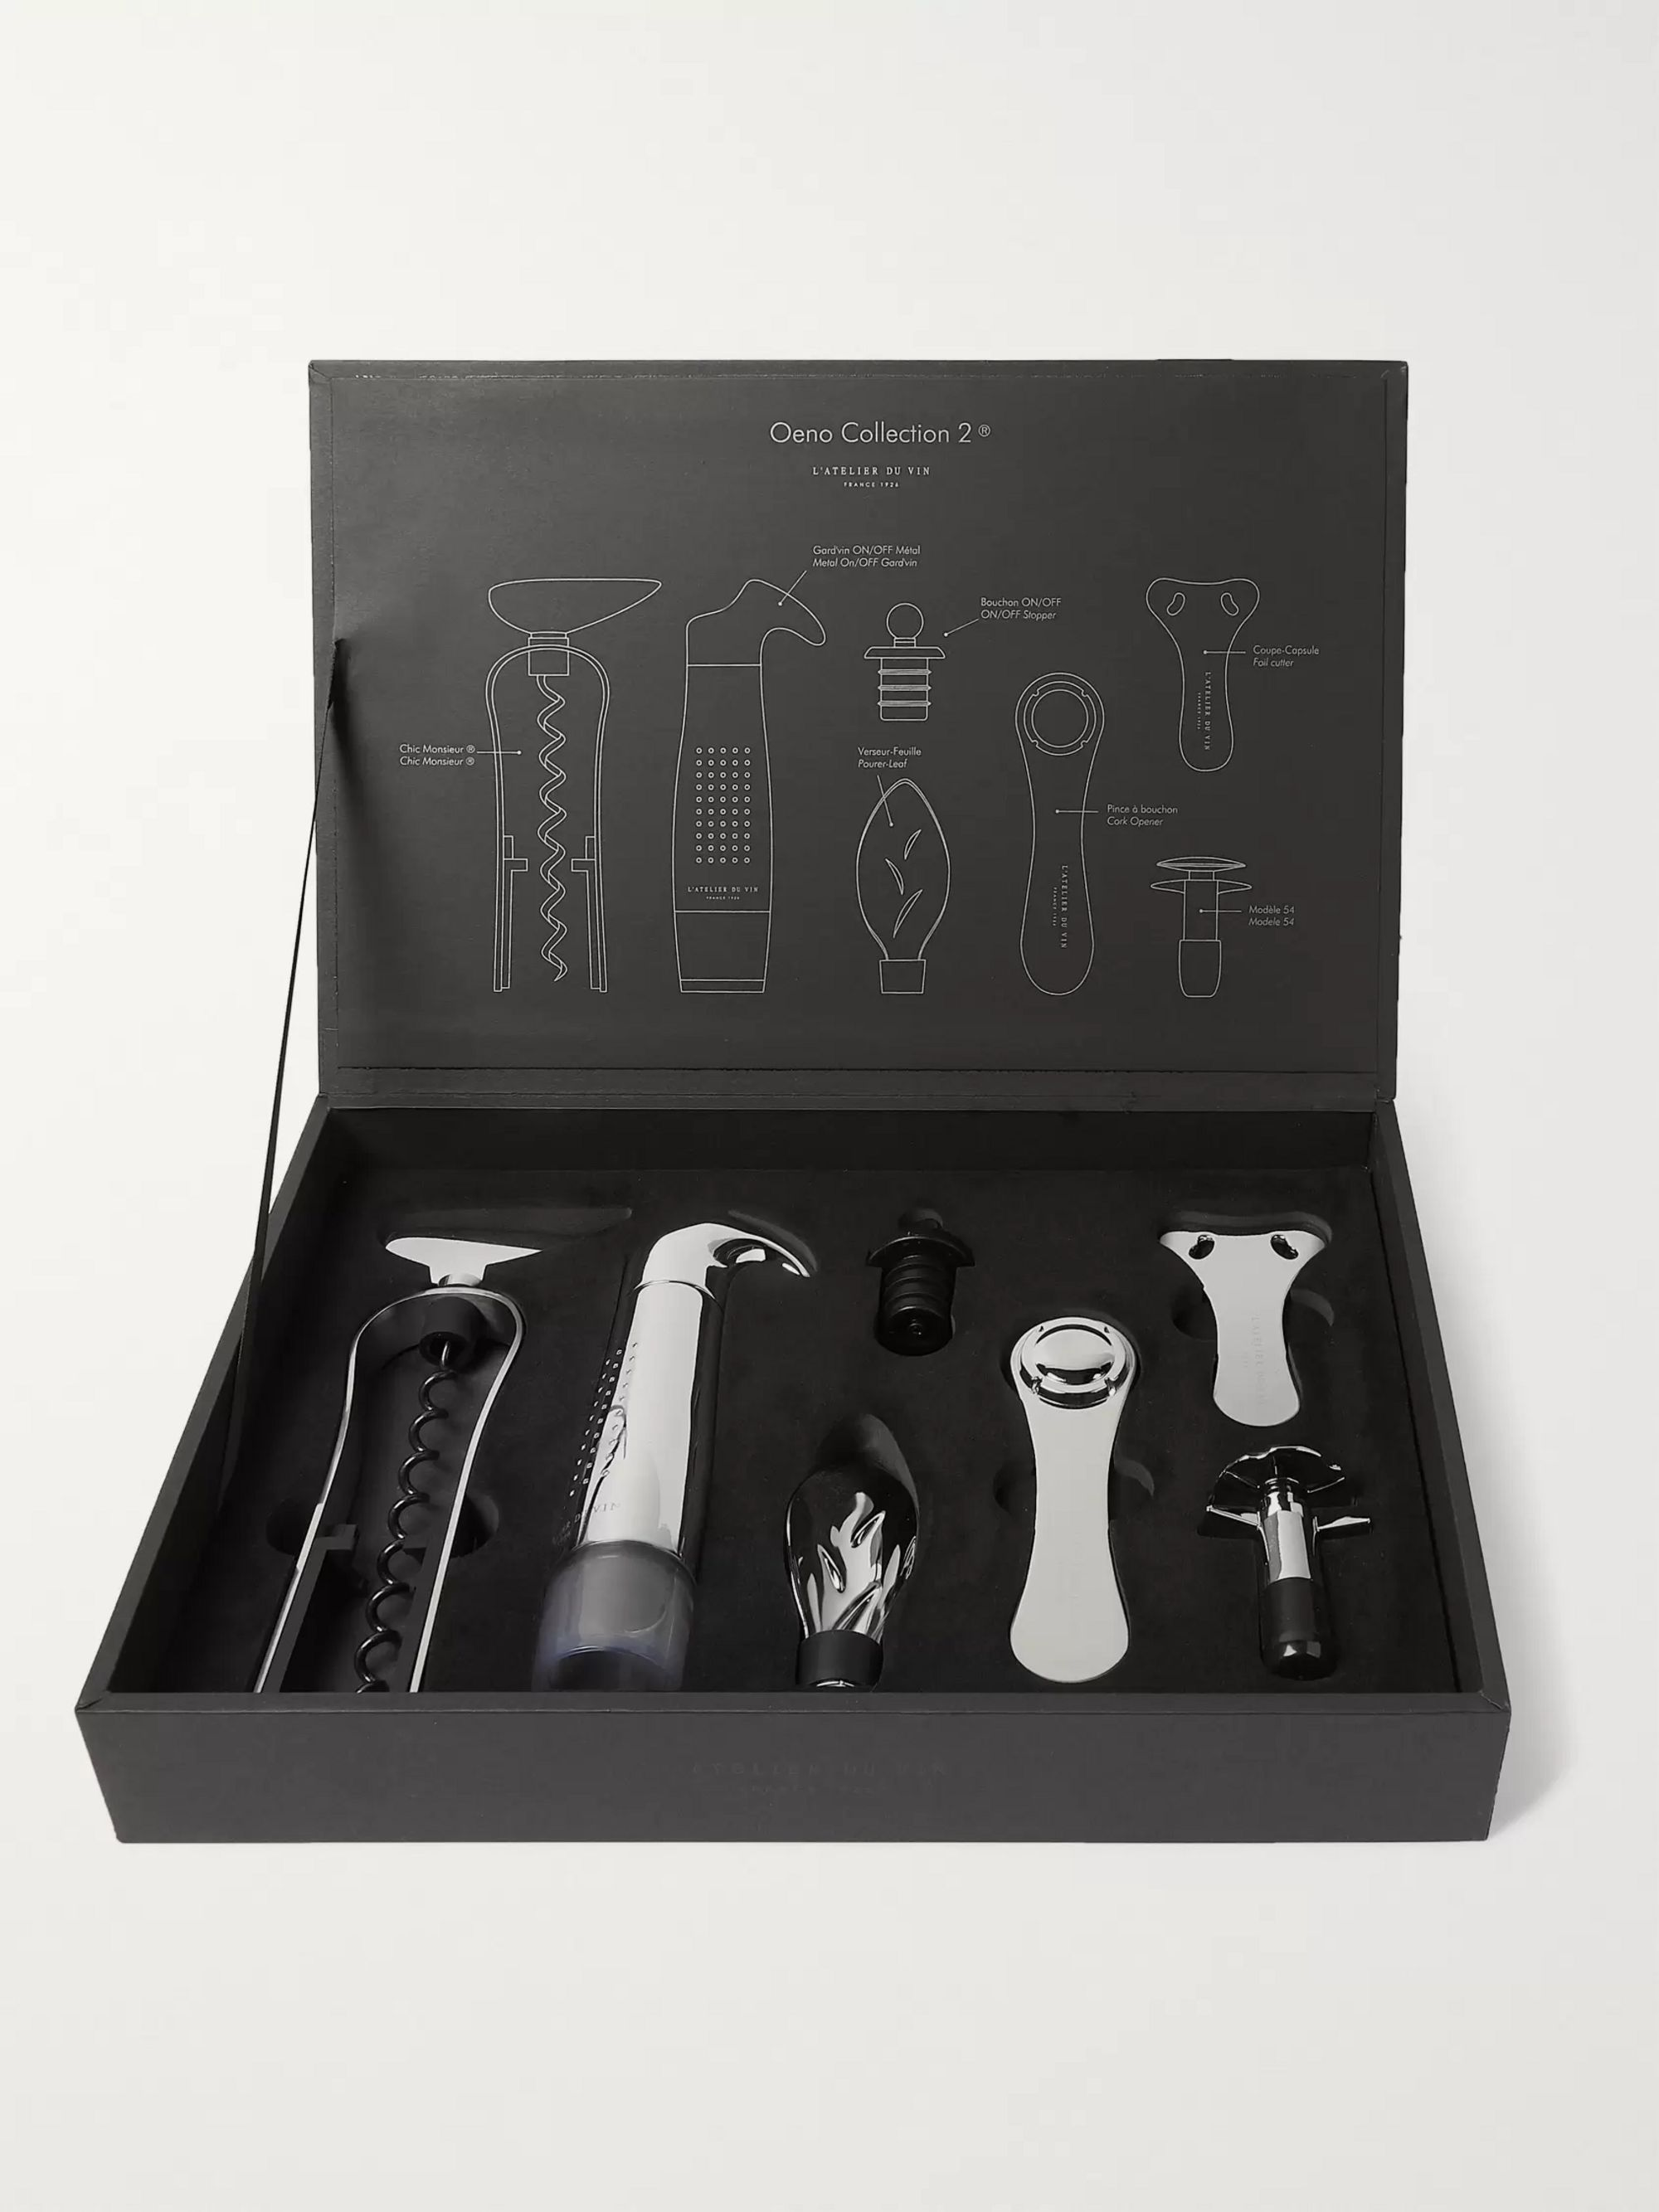 L'Atelier du Vin Oeno Collection 2 Boxed Set